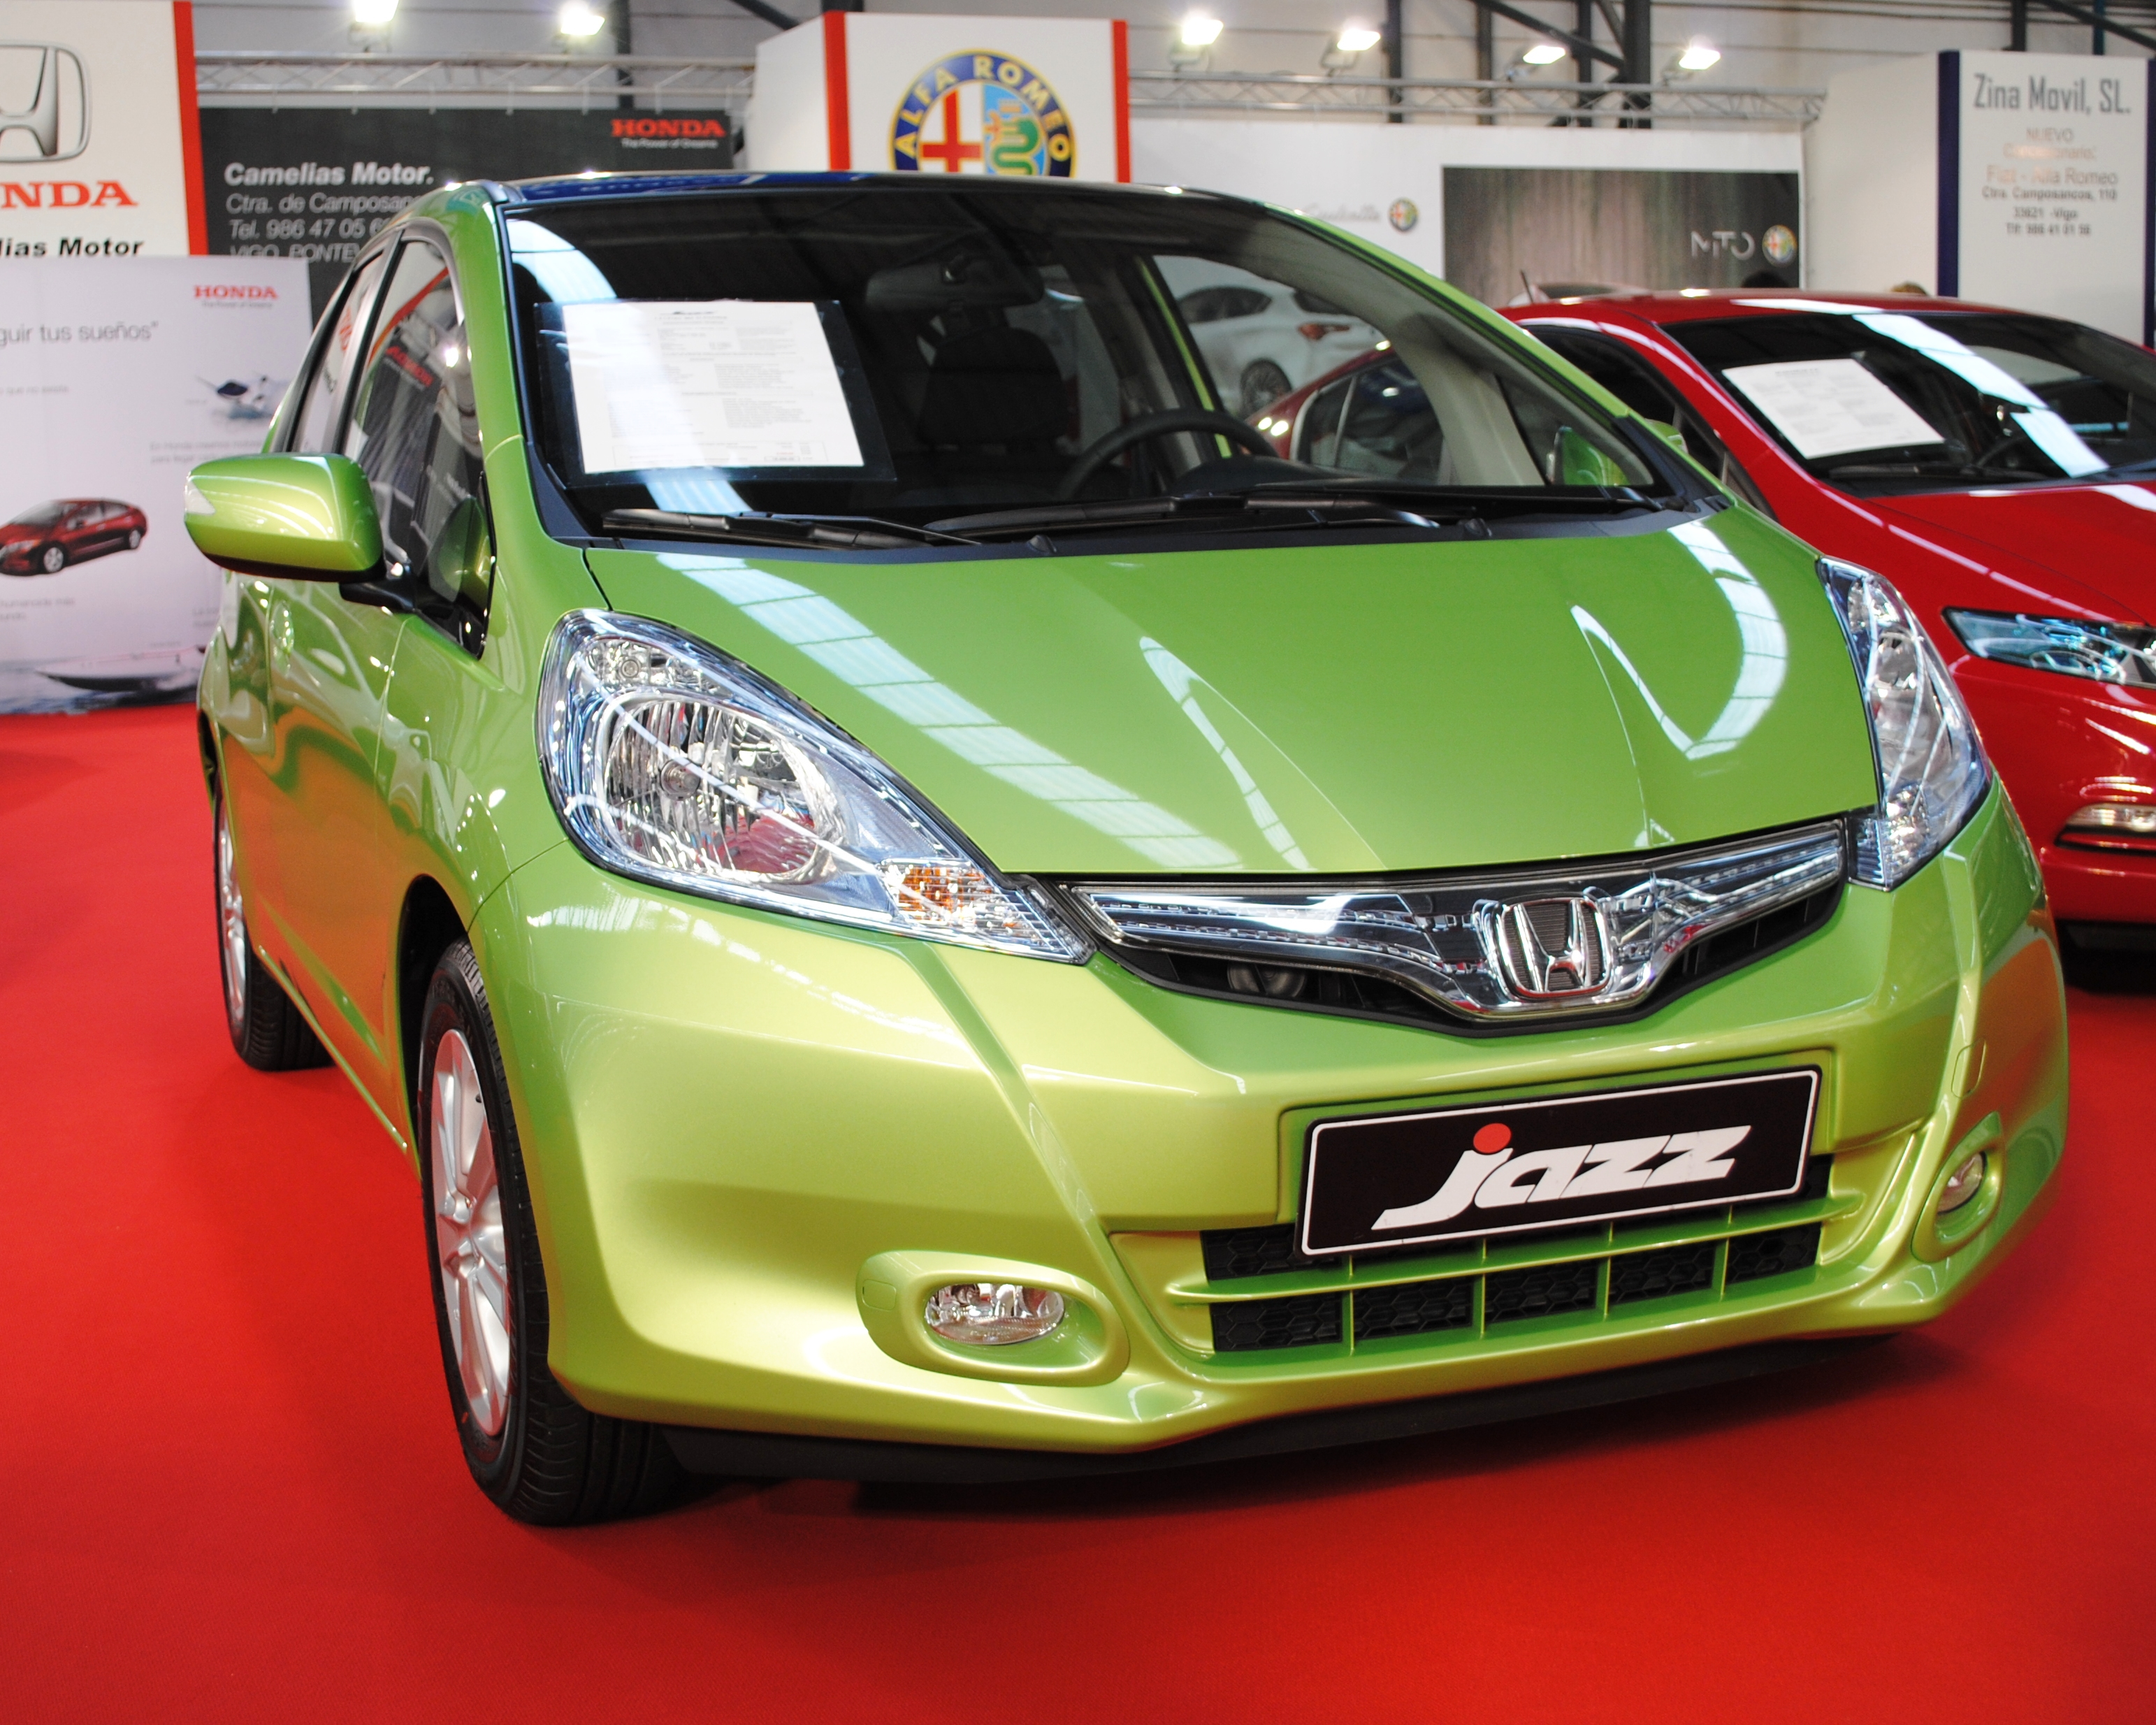 File:HONDA JAZZ, 2012, IFEVI.JPG - Wikimedia Commons